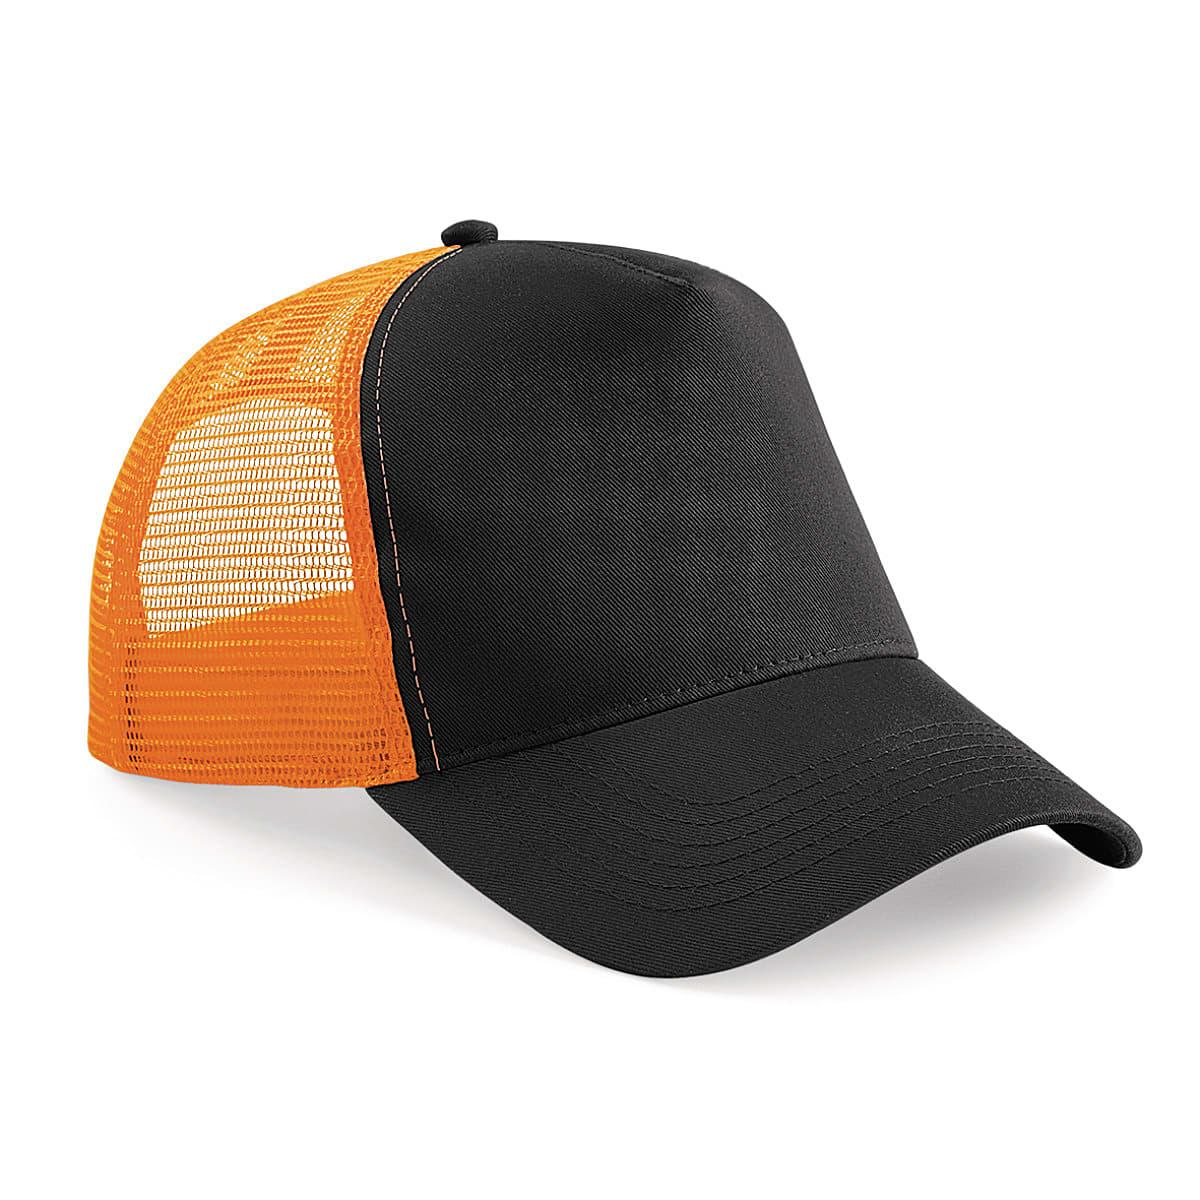 Beechfield Snapback Trucker Cap in Black / Orange (Product Code: B640)